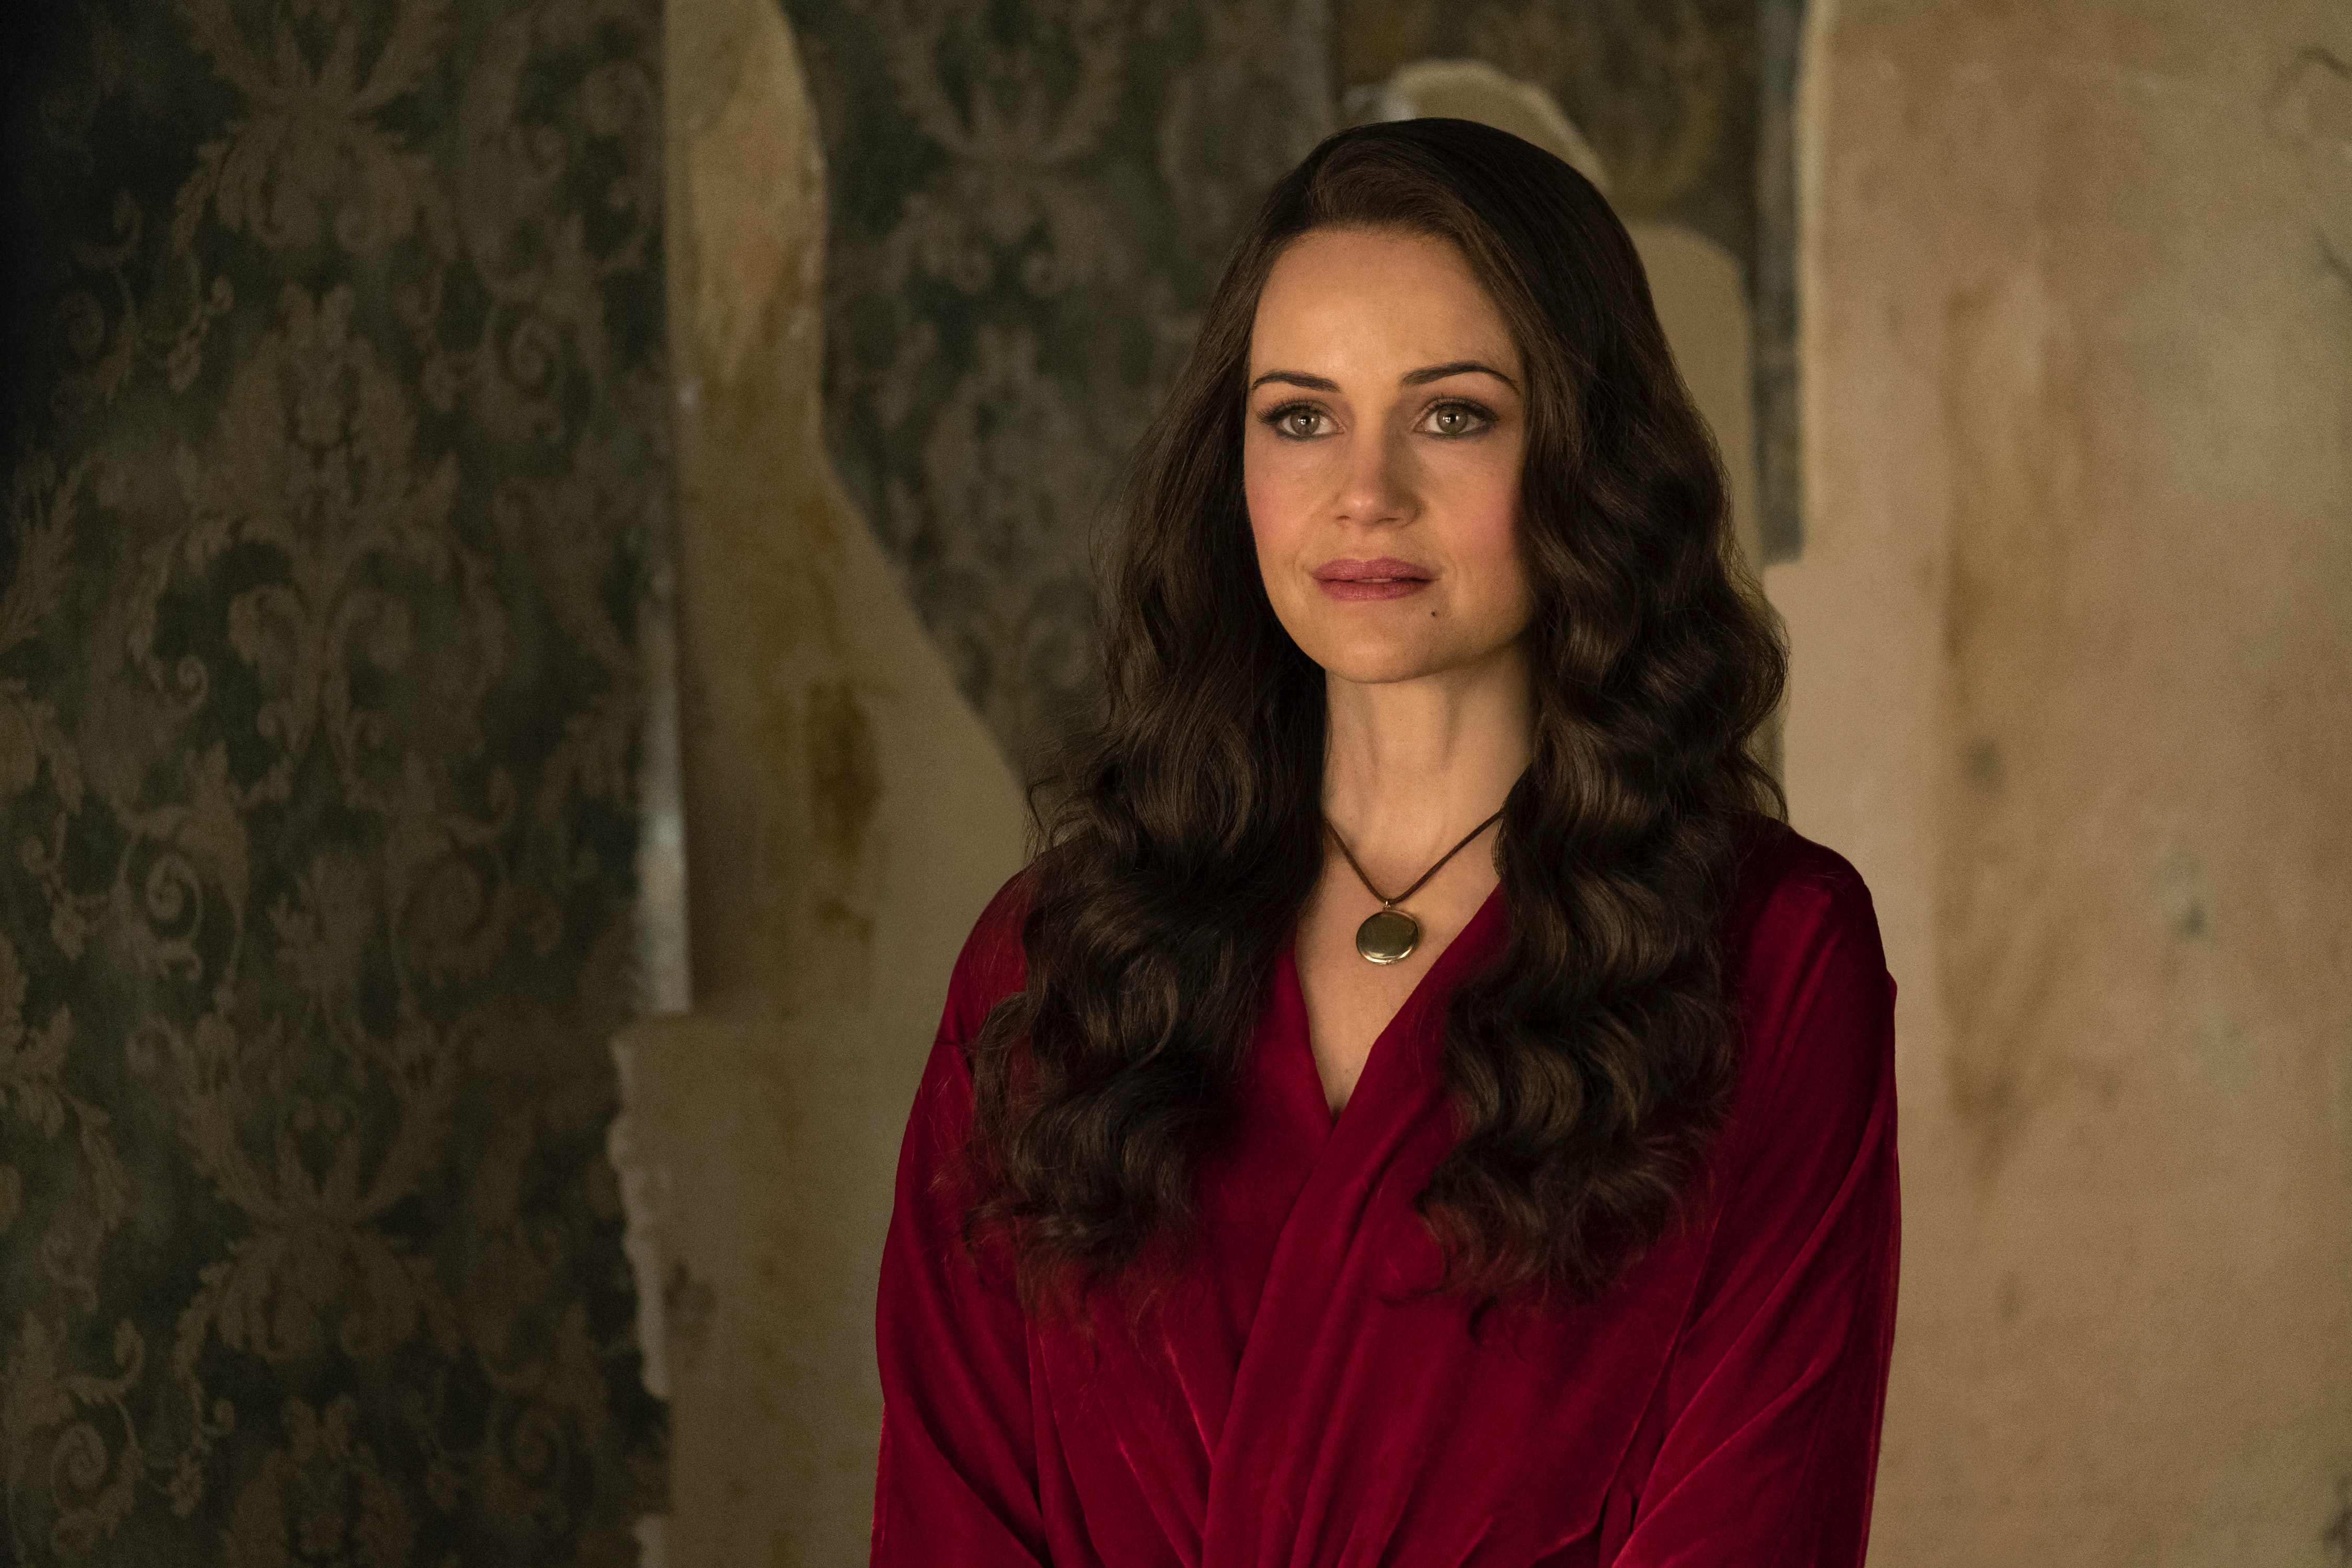 Is 'The Haunting Of Hill House' Based On A True Story